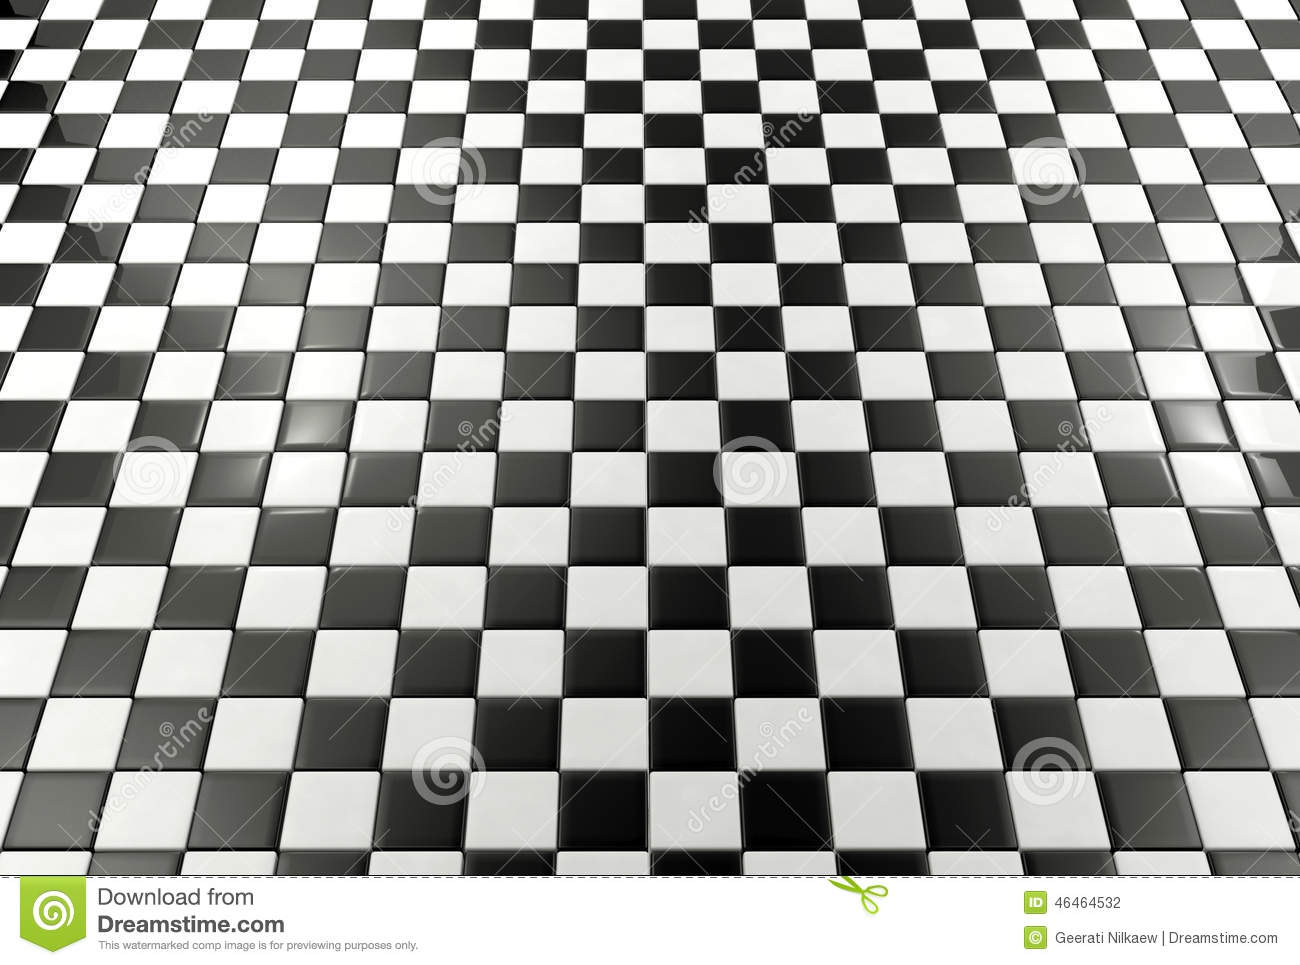 Black and white tiles background stock illustration image 46464532 royalty free illustration download black and white tiles dailygadgetfo Gallery